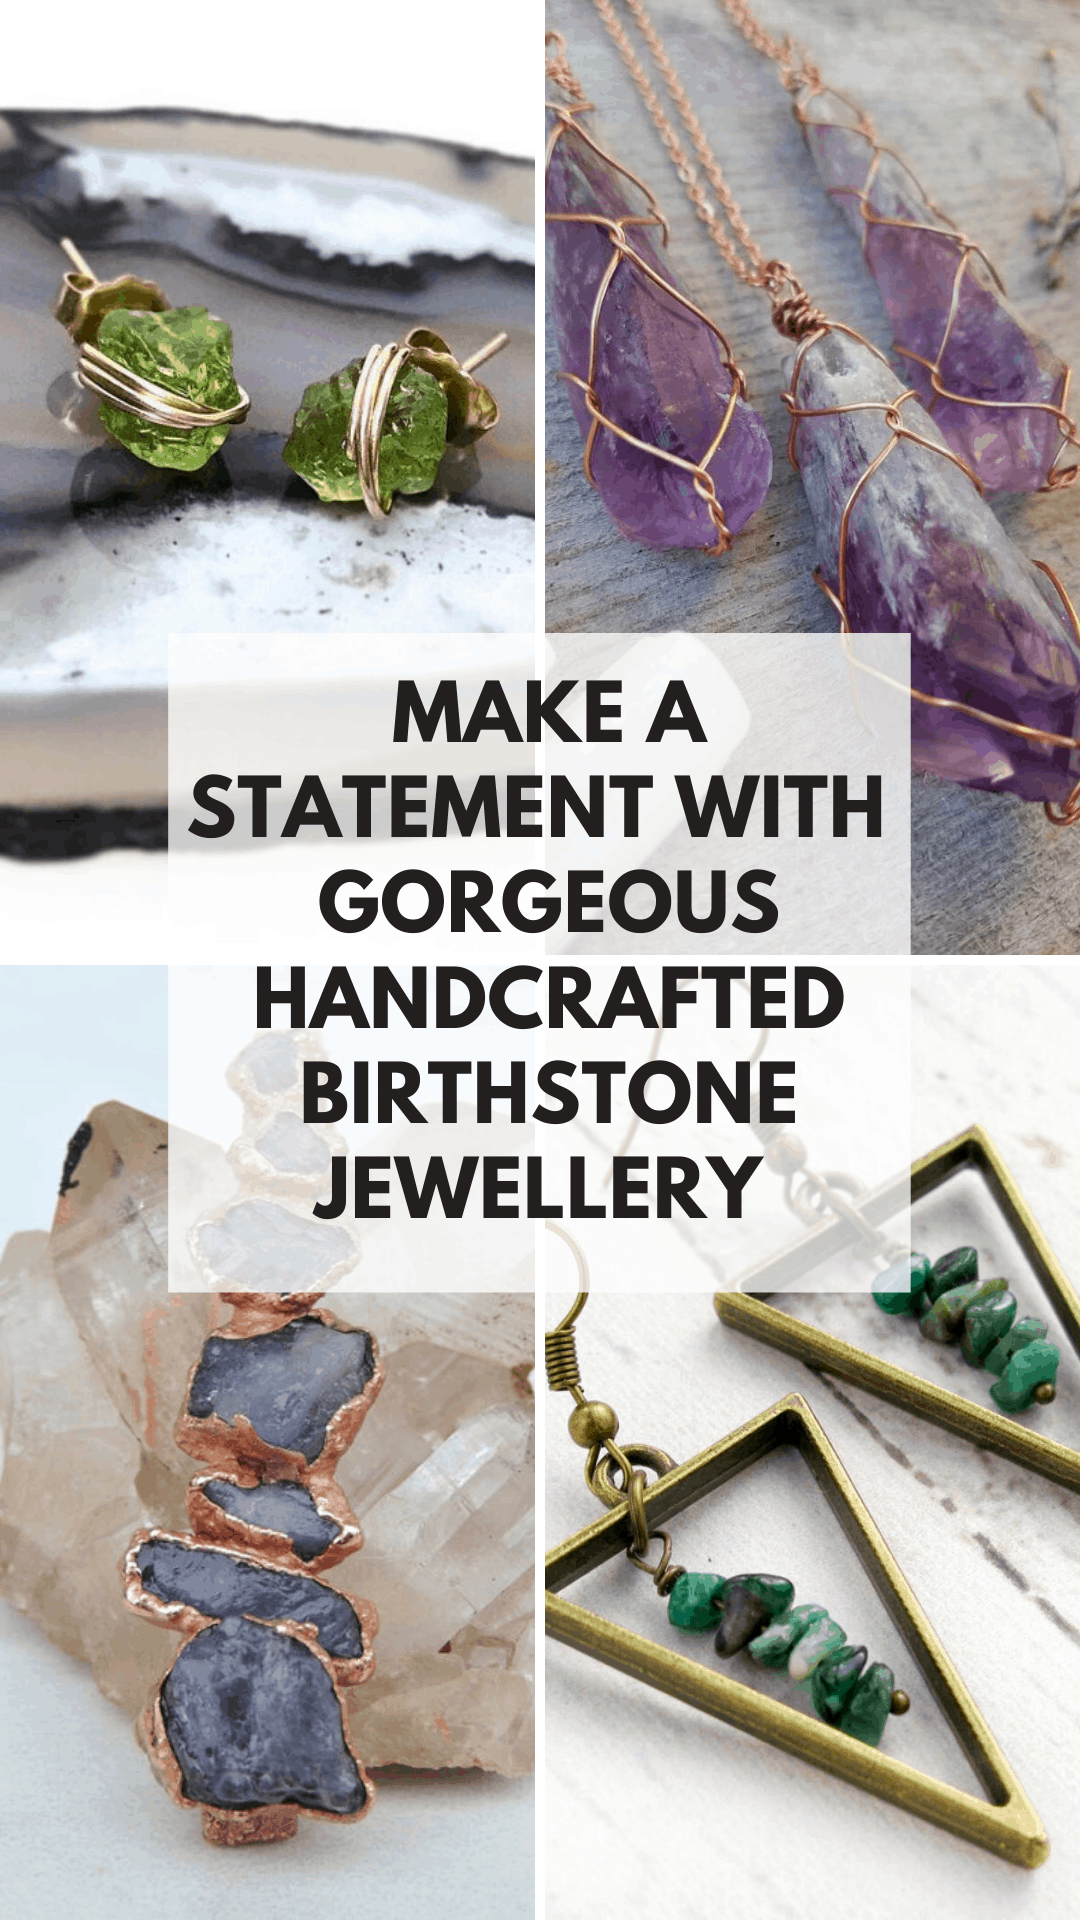 These handcrafted birthstone jewelry pieces make thoughtful gifts and are a wonderful way to make a statement